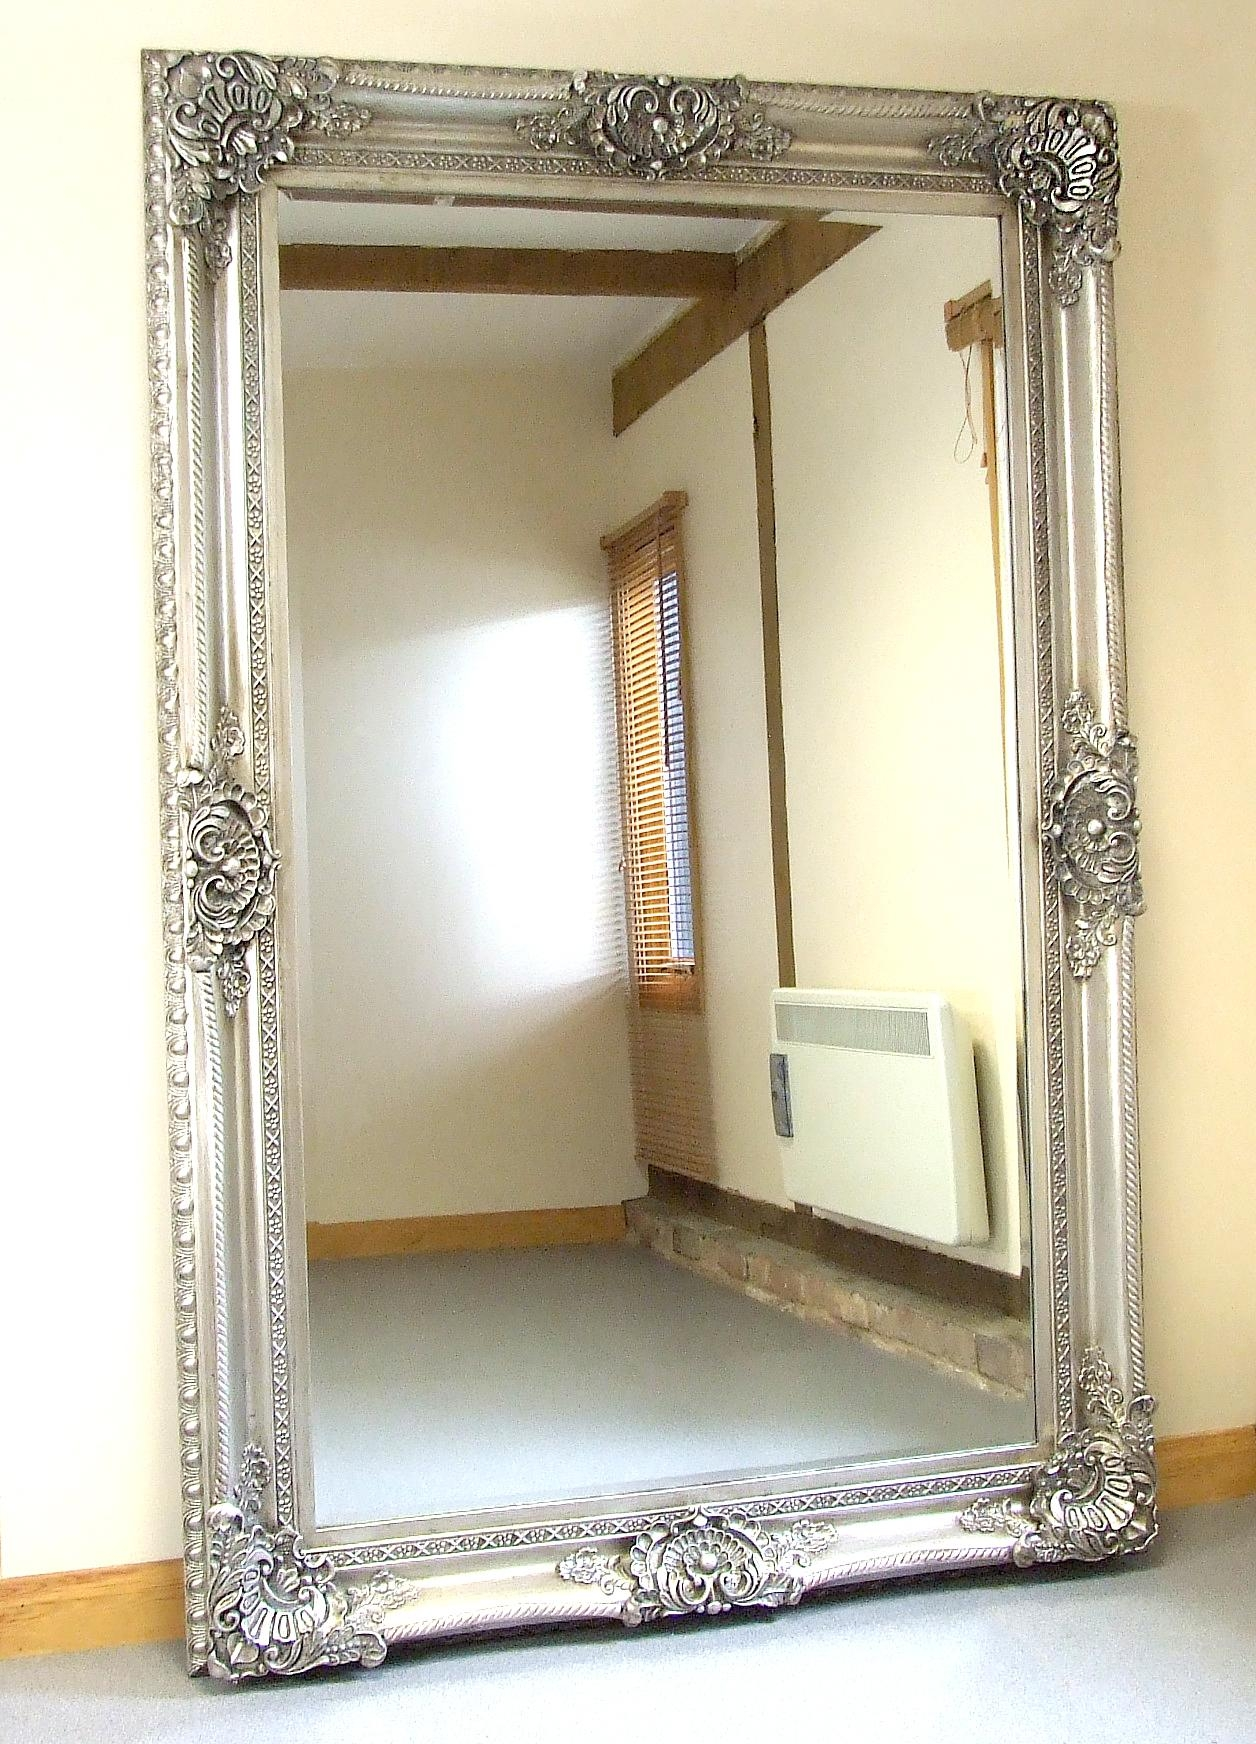 Flooring : Ornater Mirror Impressive Photo Design Mirrors For Sale Regarding Very Large Mirrors For Sale (View 18 of 20)